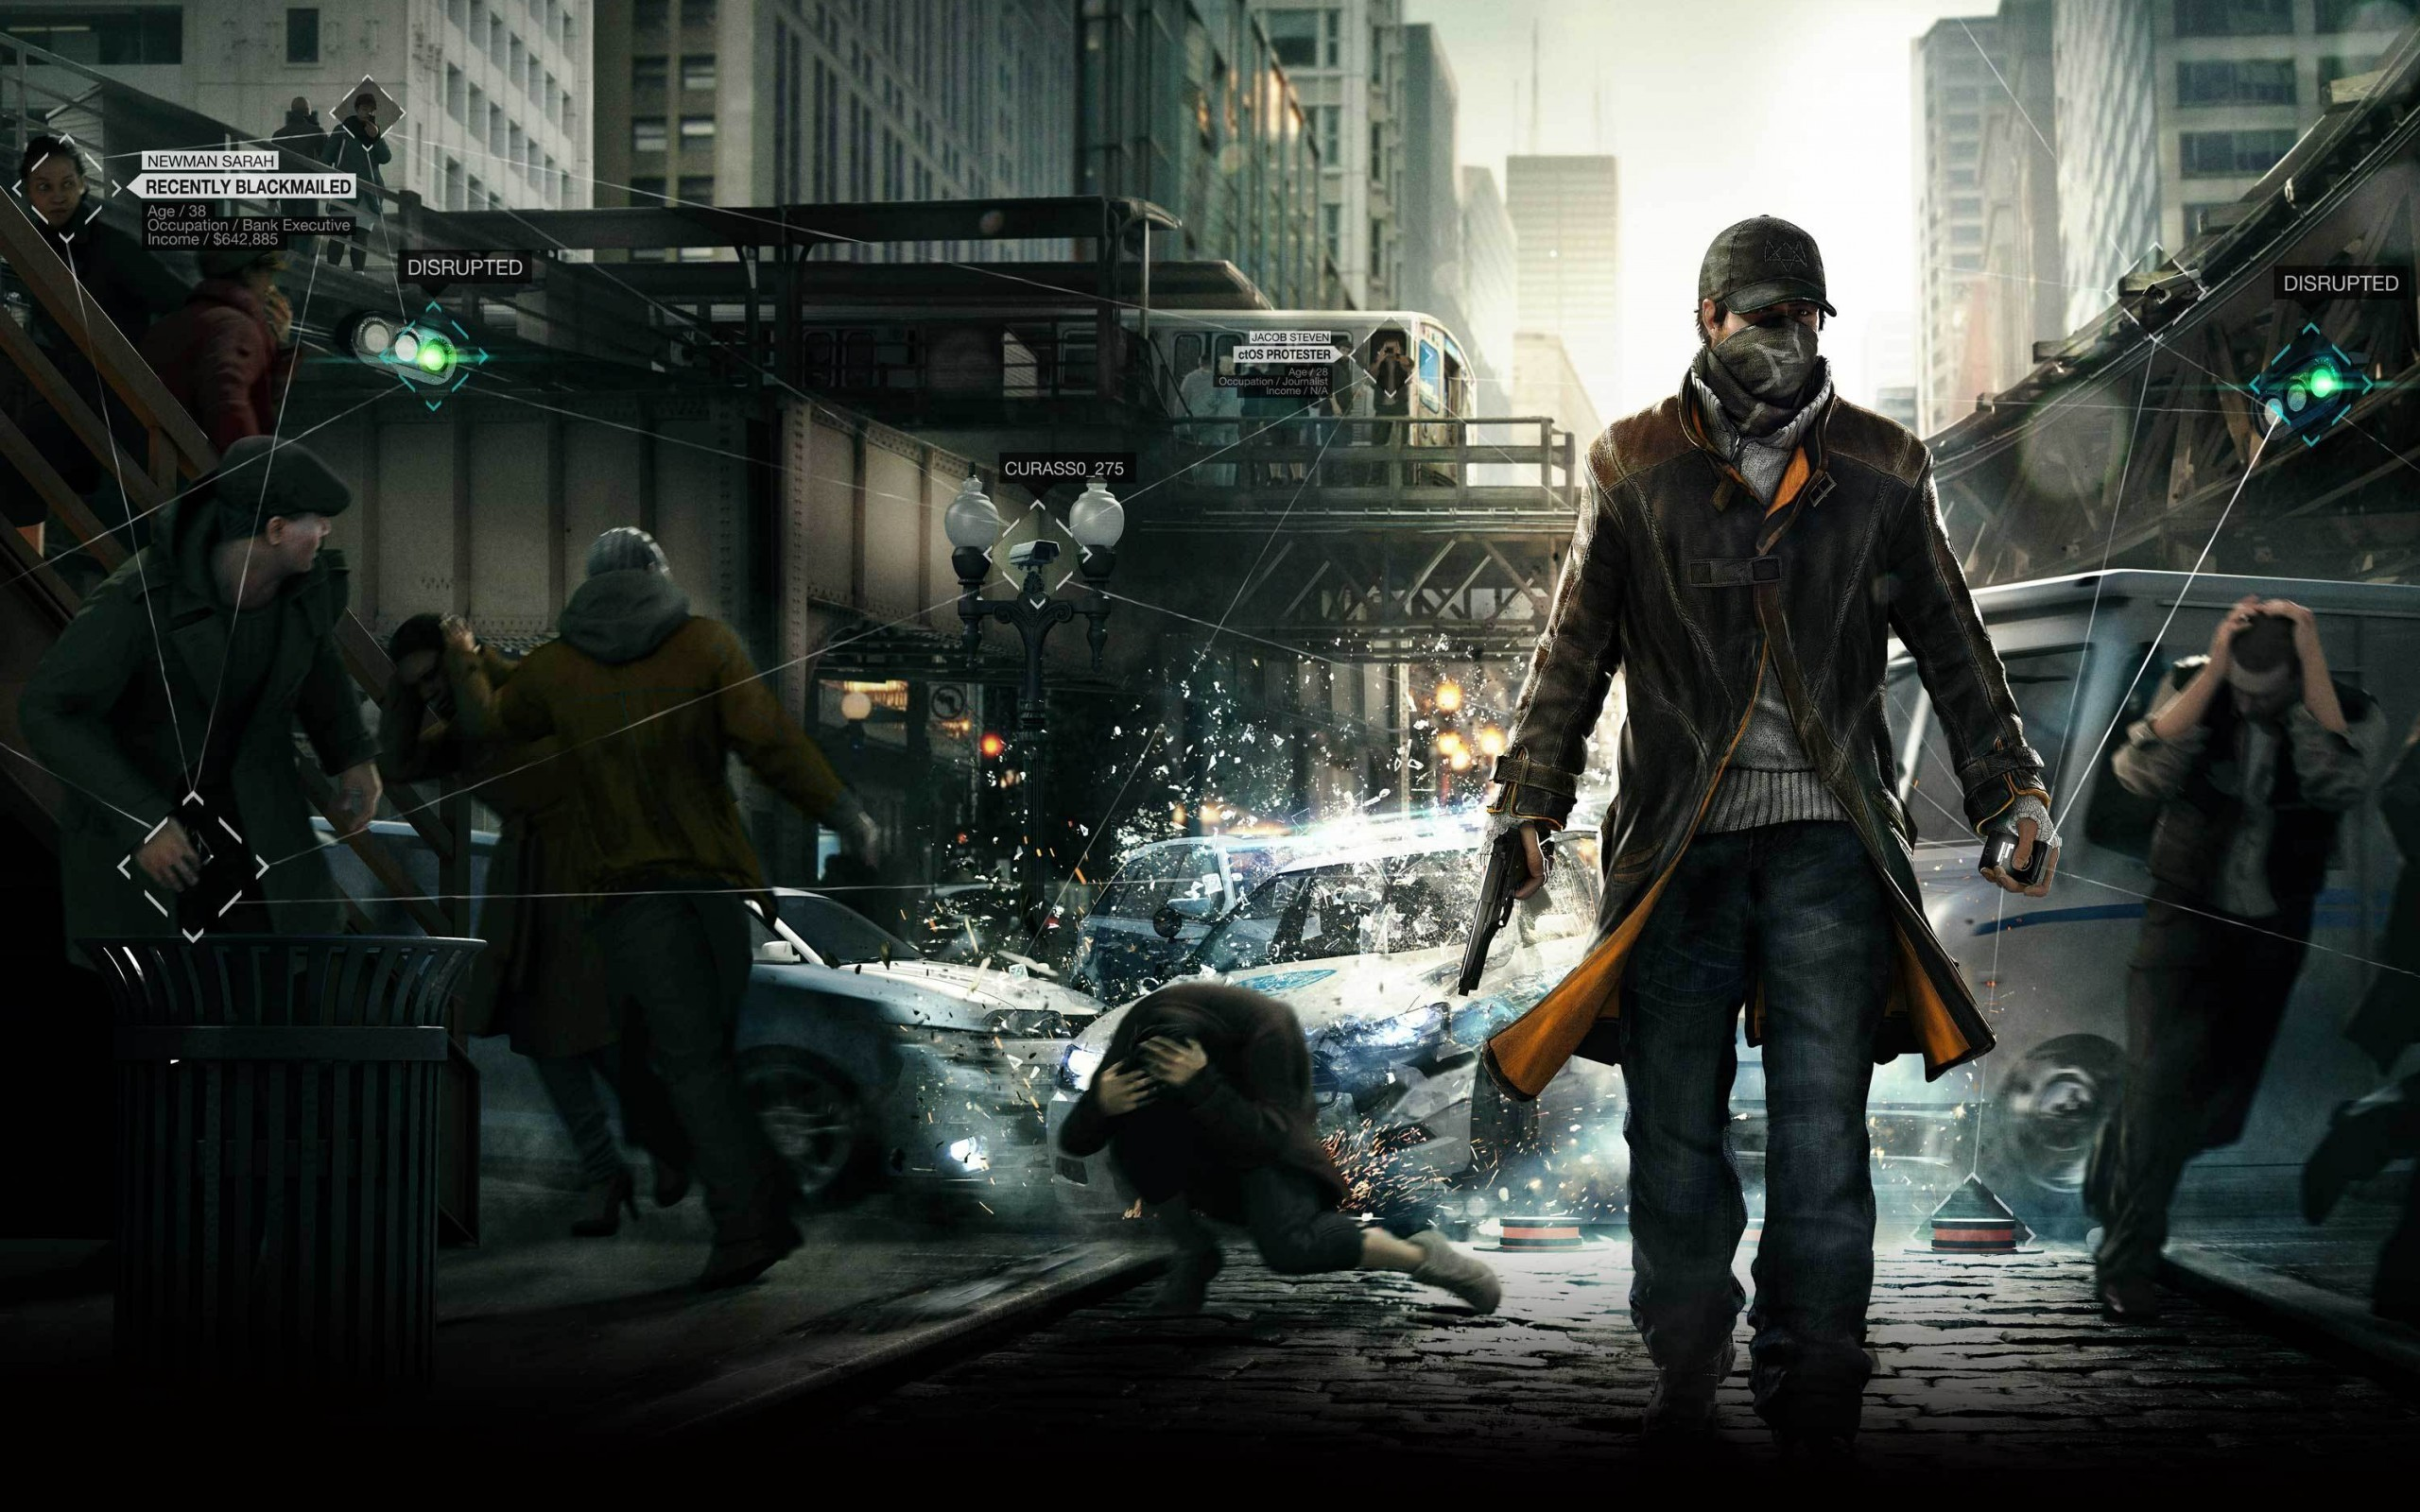 Amazing Watch Dogs Wallpaper